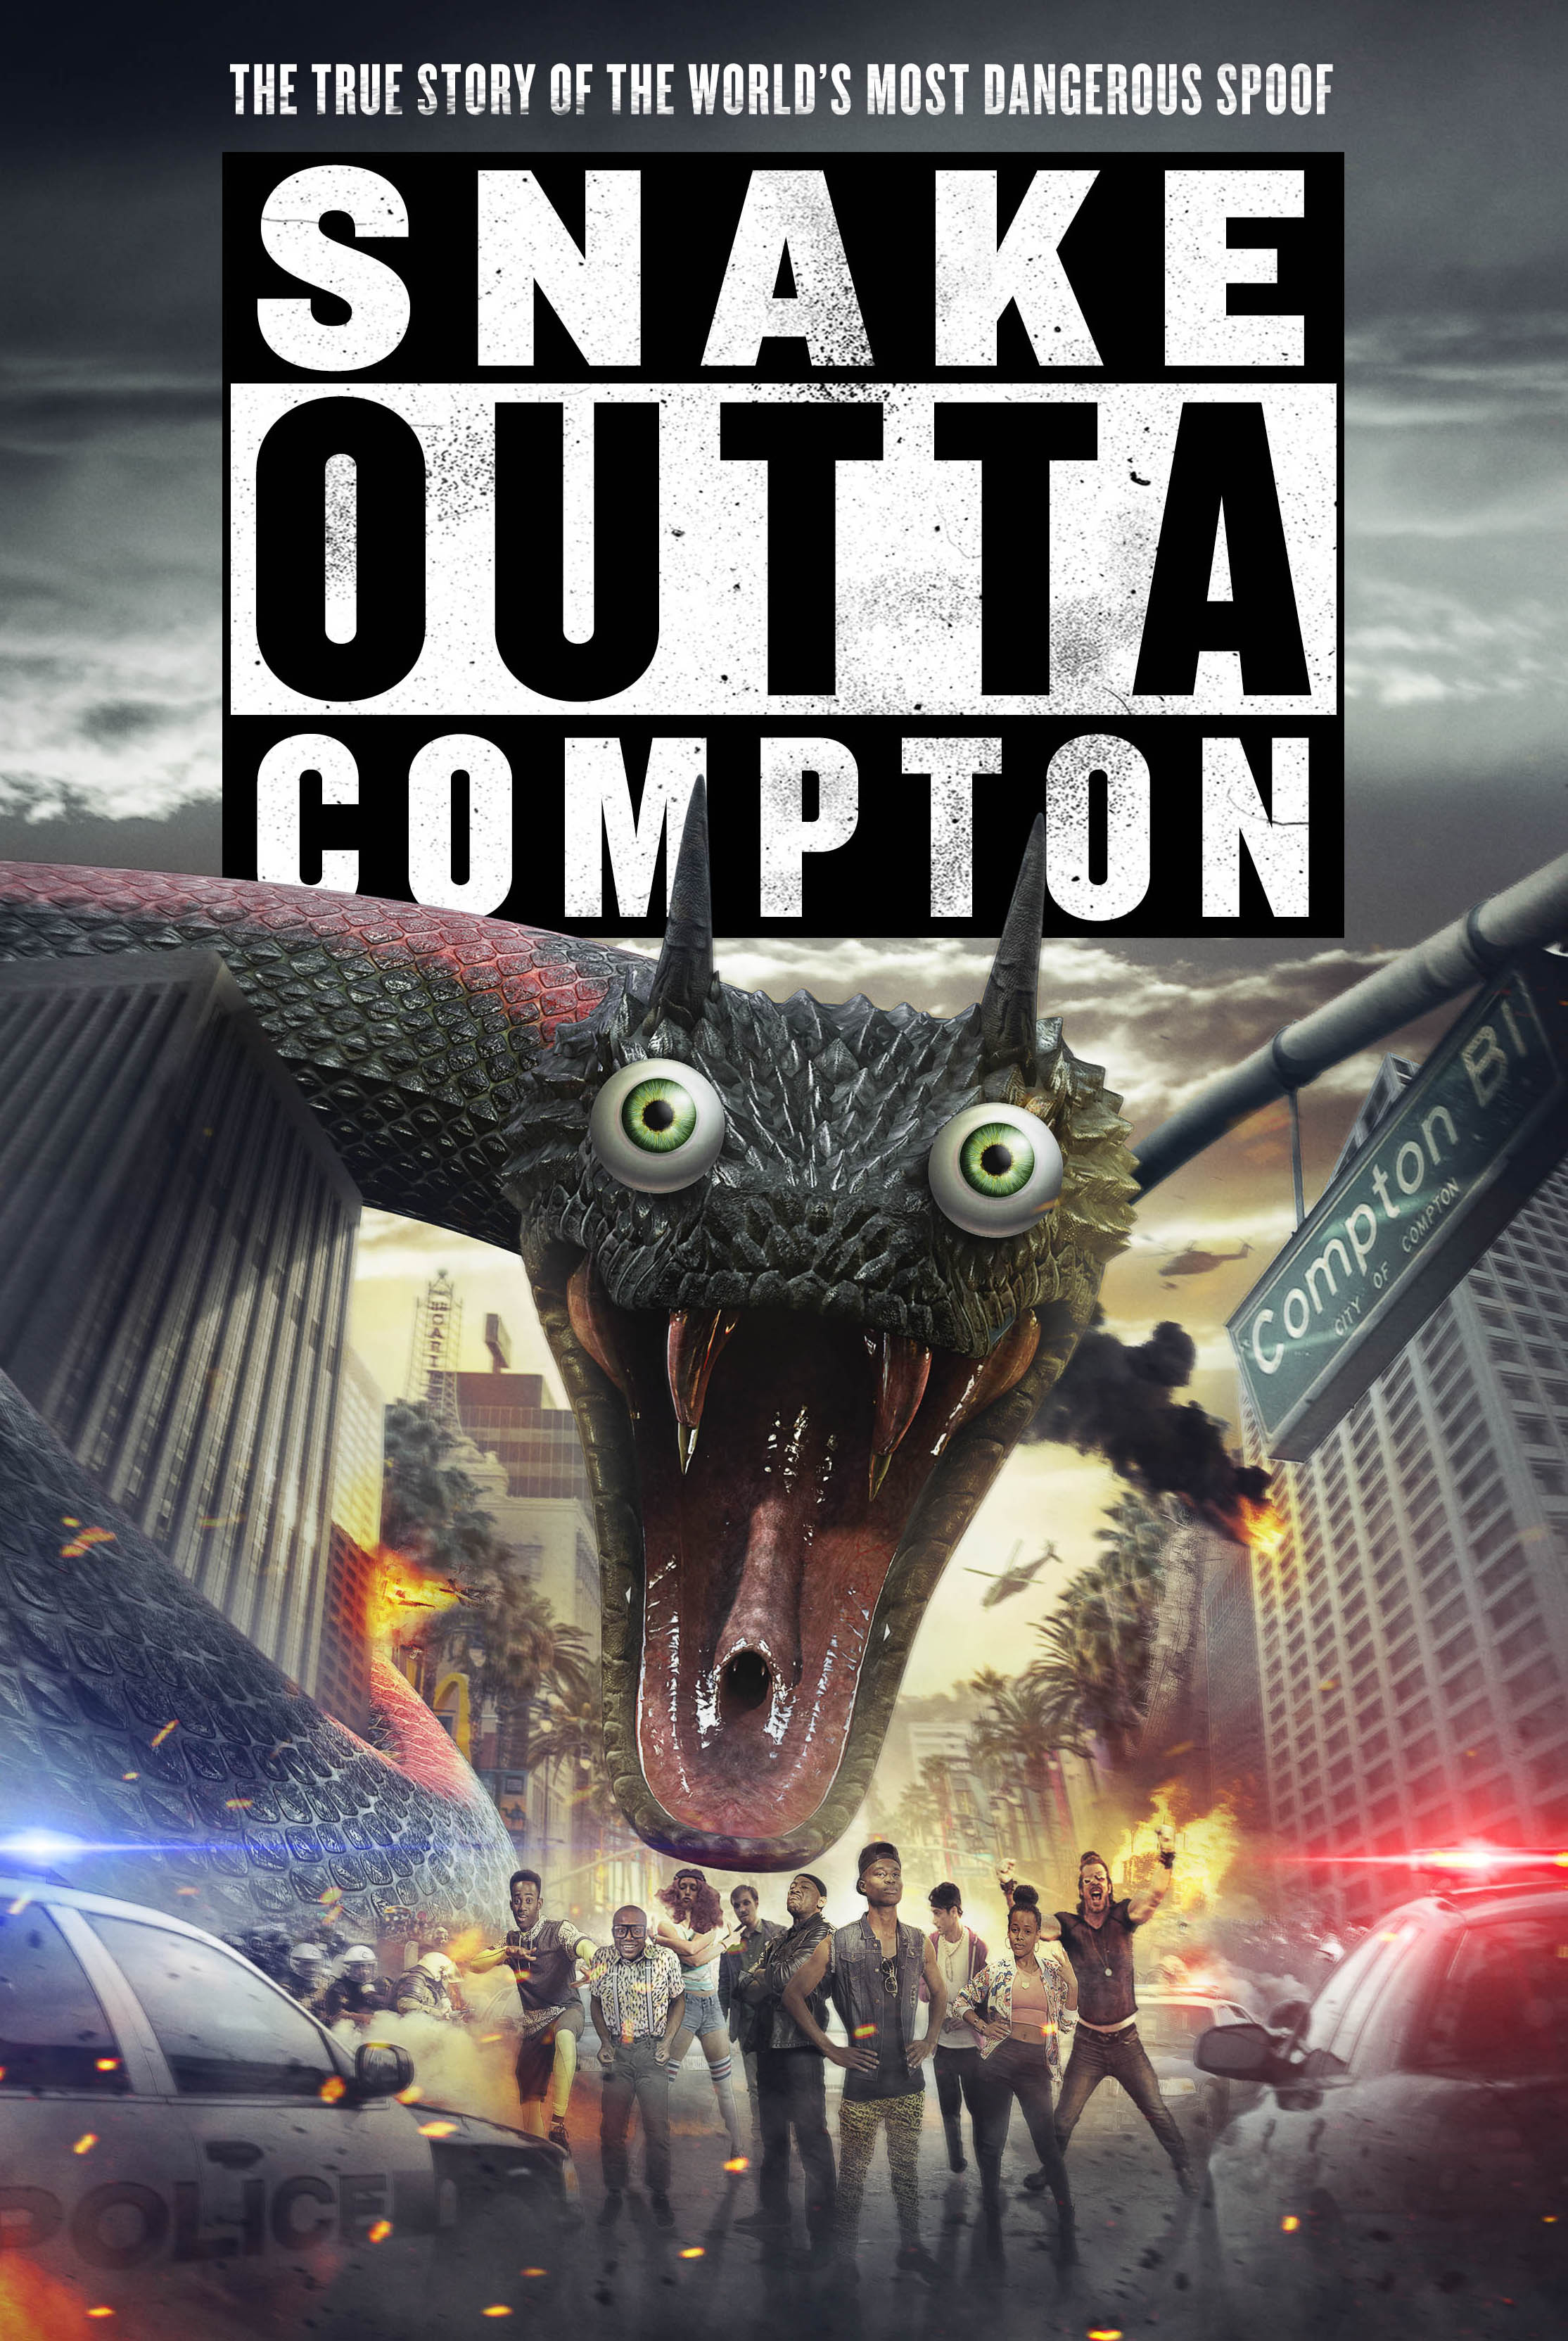 Download Snake Outta Compton (2018) BluRay 720p Full Movie [In English] With Hindi Subtitles Full Movie Online On 1xcinema.com